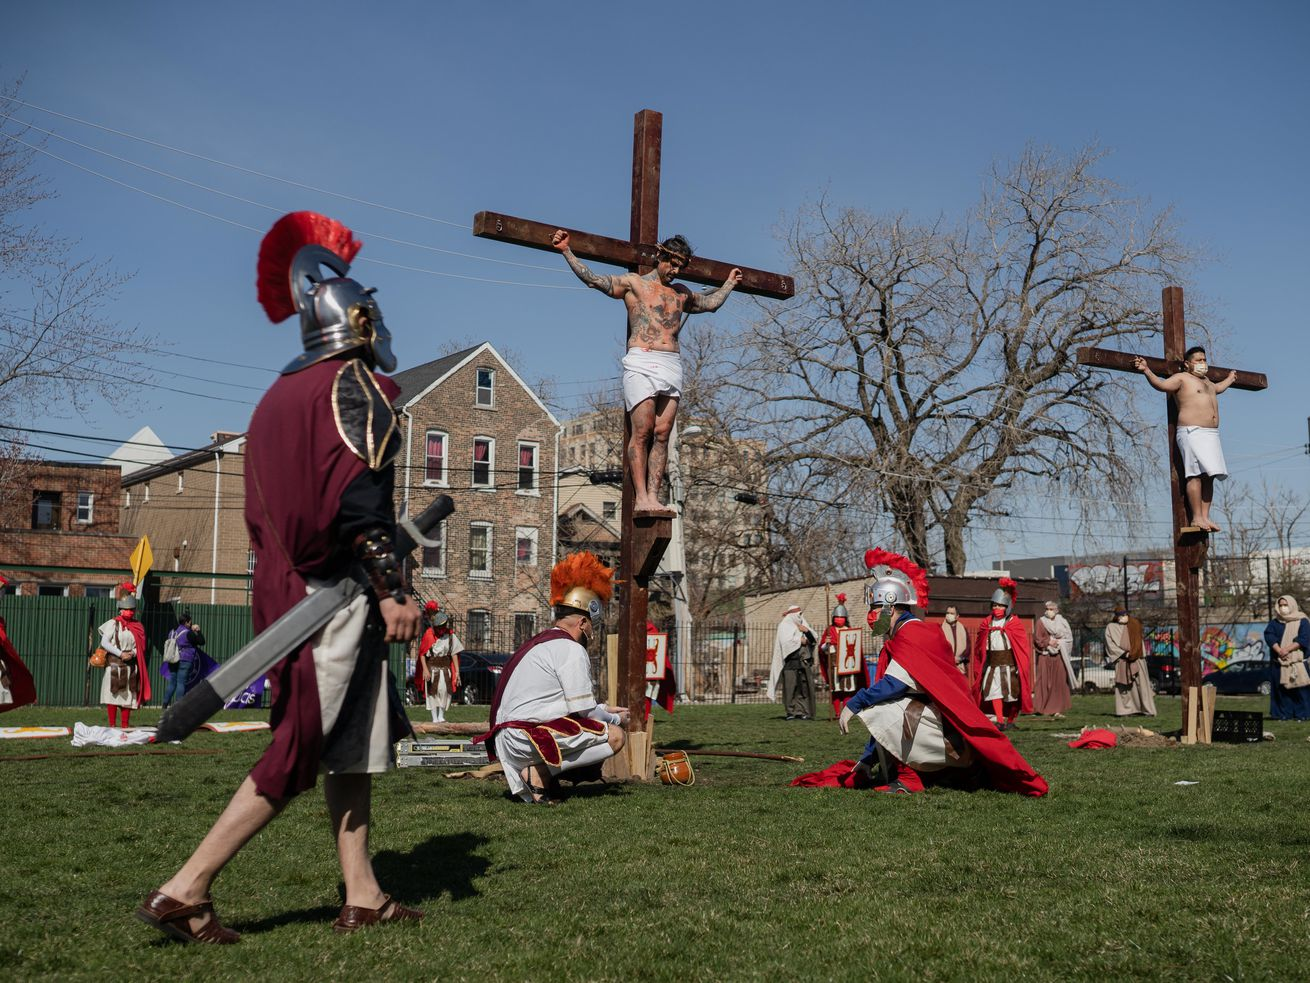 Isaac Pucio, who plays Jesus Christ, acts as if he is crucified during Via Crucis on the field of St. Procopius Catholic Church in Pilsen, Friday morning, April 2, 2021. The annual Via Crucis is a Good Friday tradition that reenacts the Stations of the Cross, a Catholic devotion that recounts Jesus' passion and death.